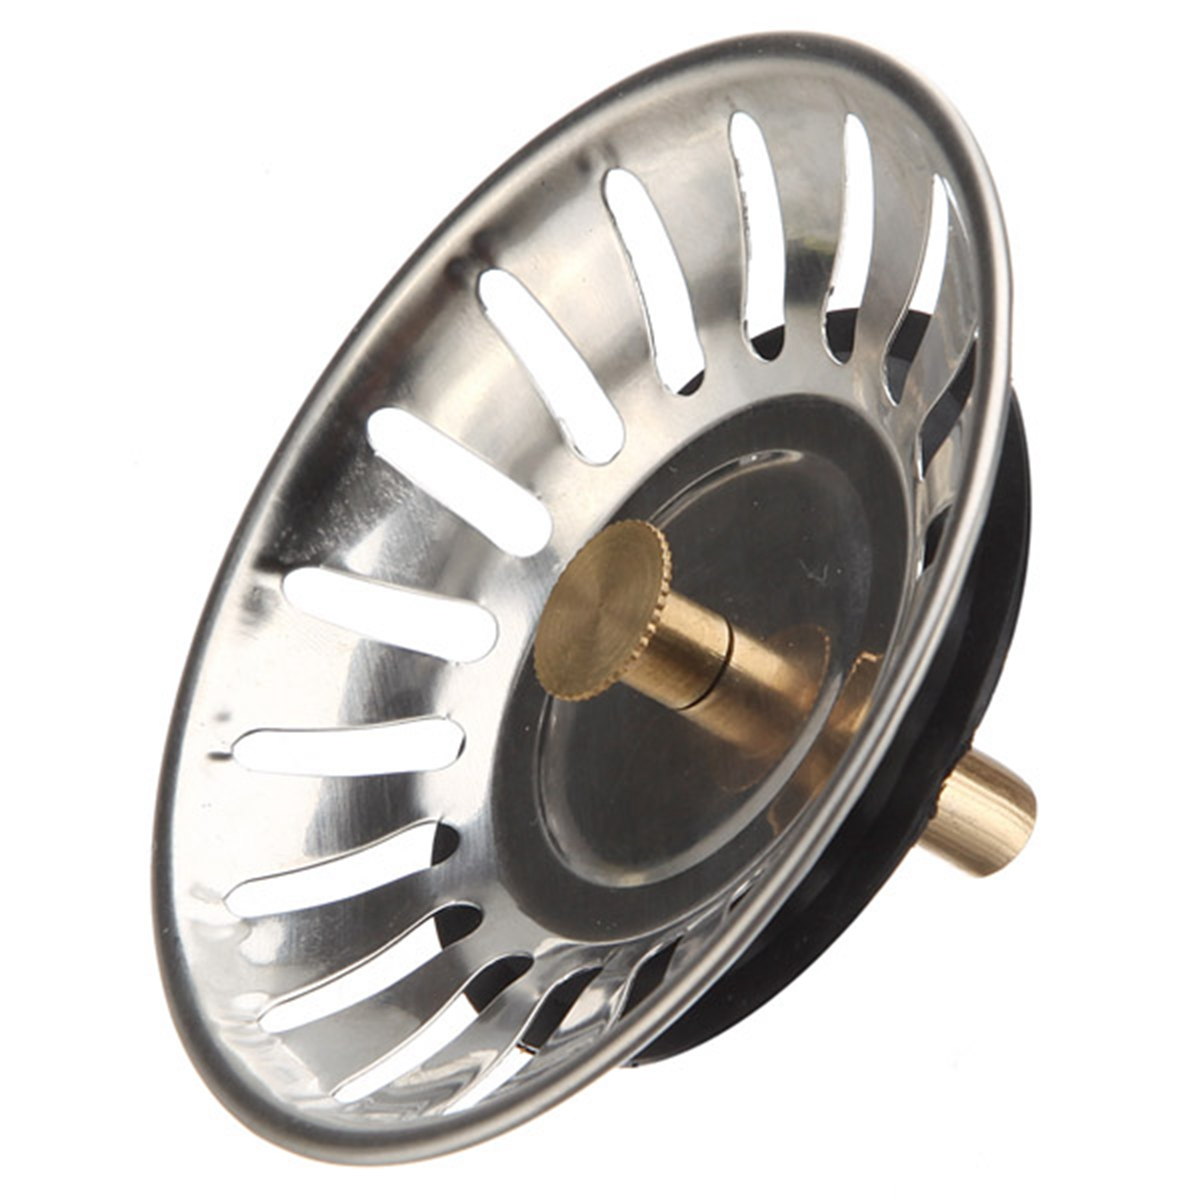 McAlpine Stainless Steel Kitchen Sink Drain Strainer Waste Plug Drain  Stopper Filter